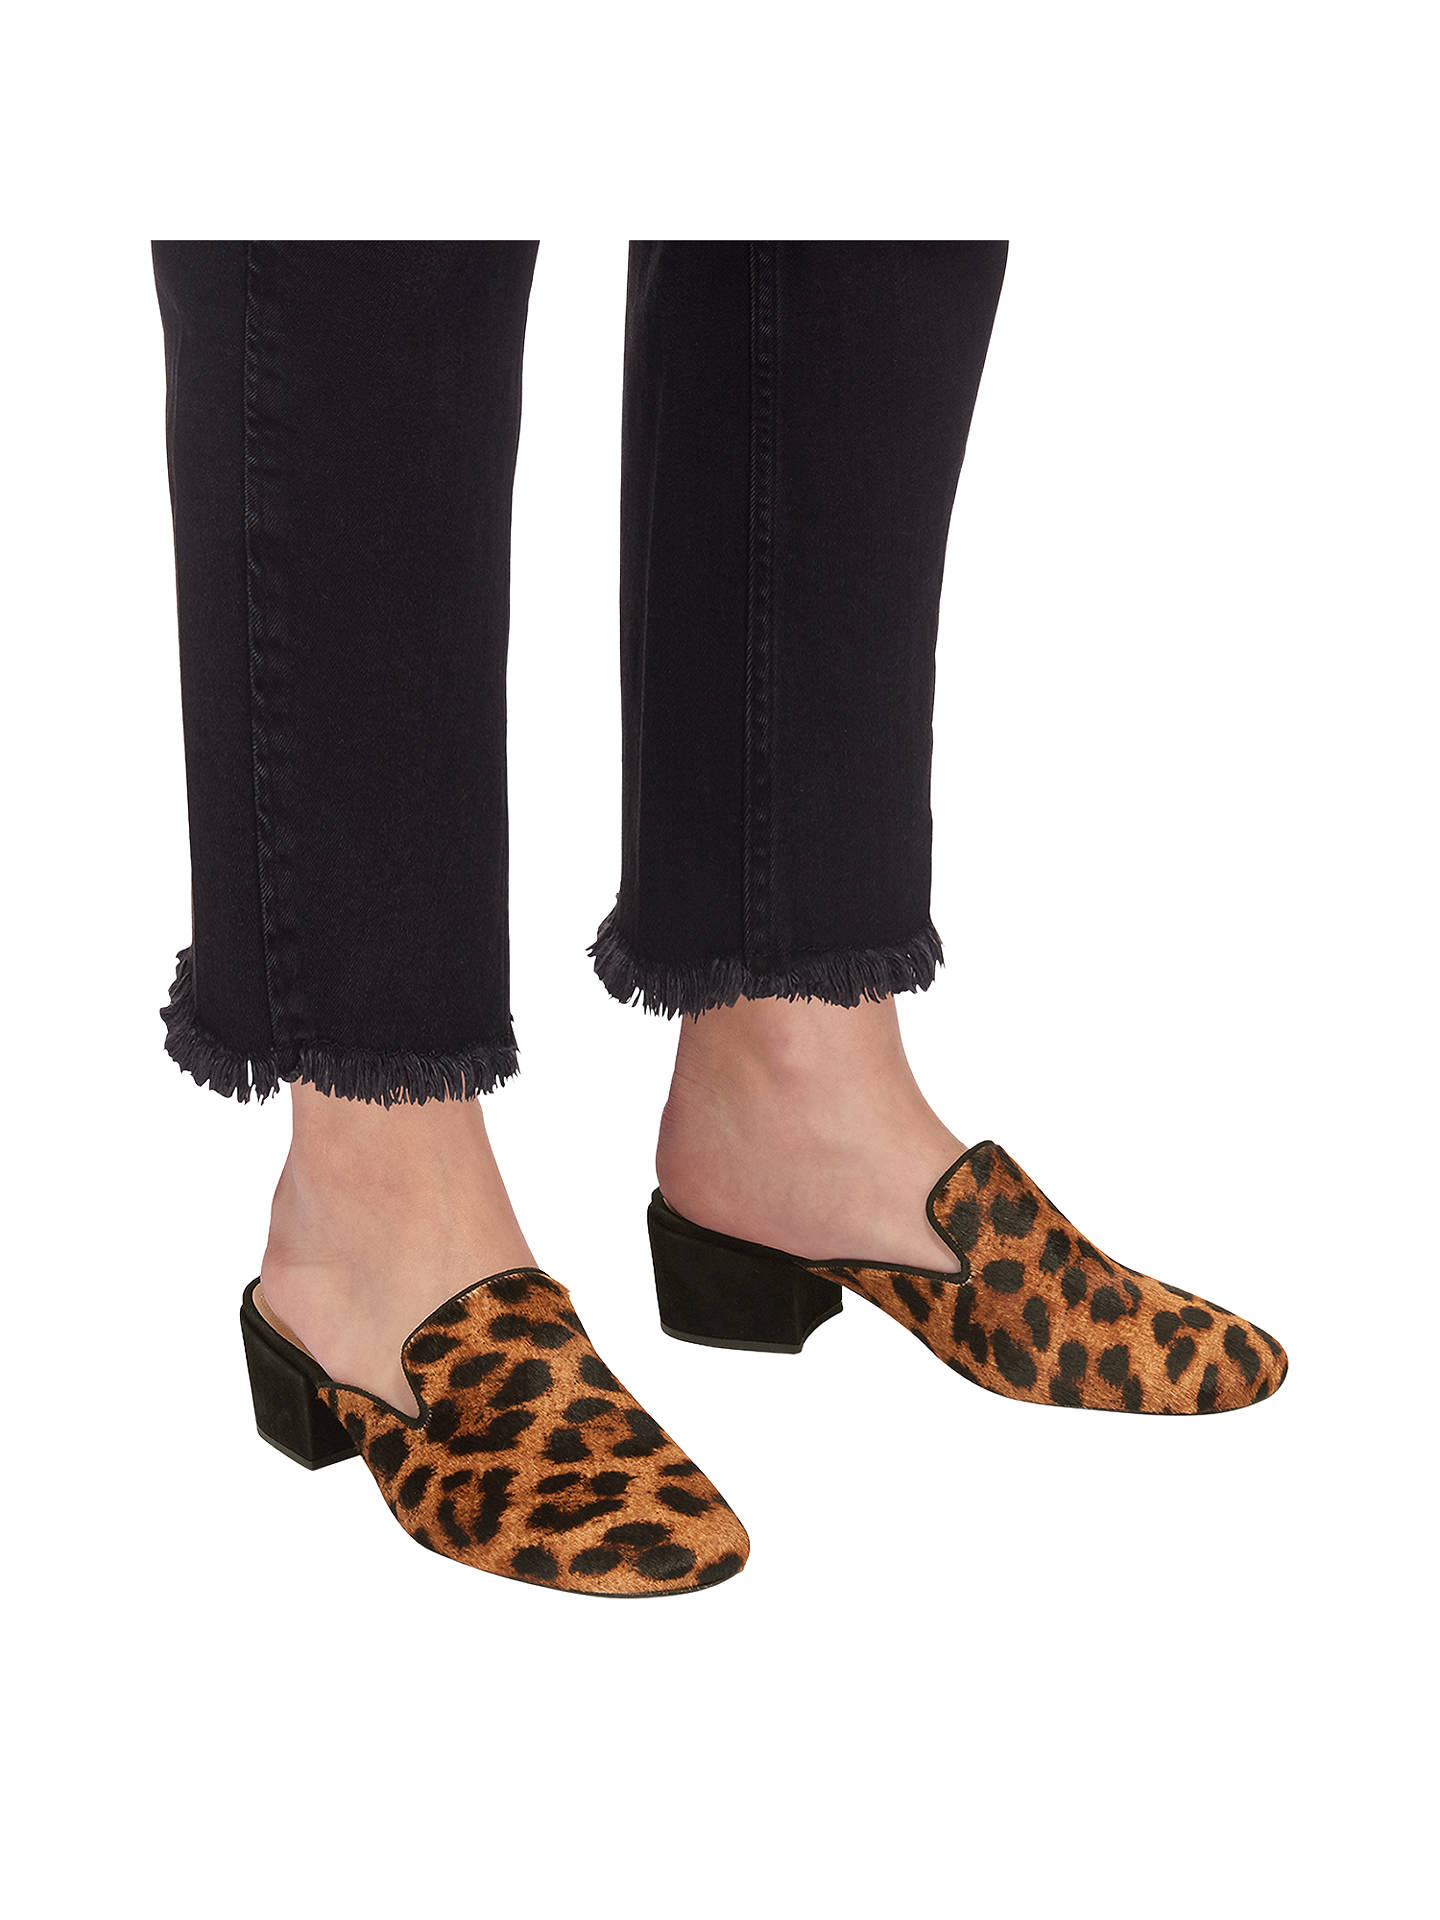 59ccc6973b3 ... Buy Whistles Dex Backless Loafers